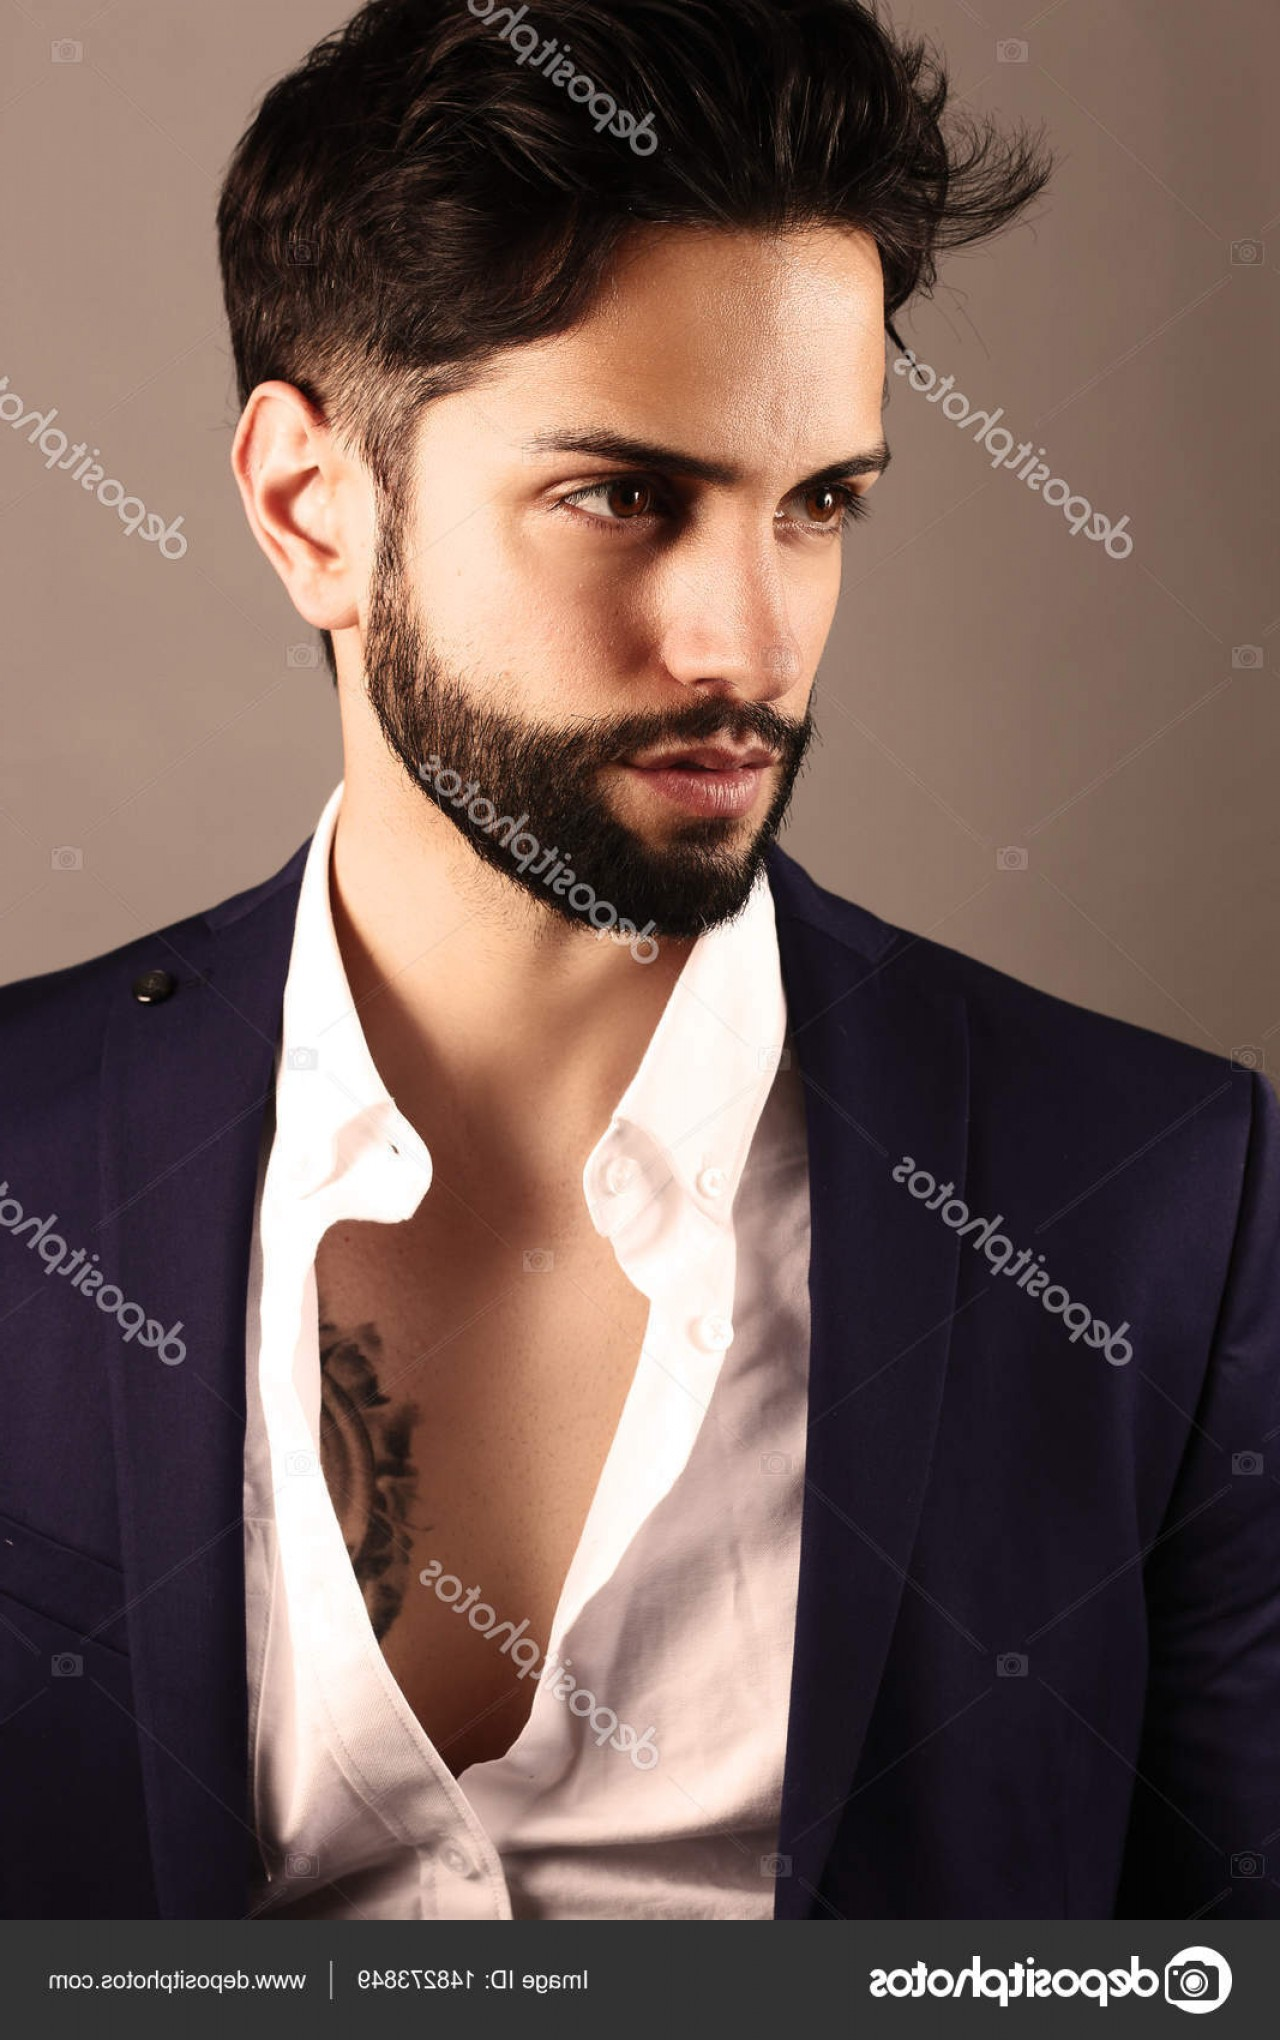 Vector Male Fade Hair: Stock Photo Handsome Man With A Low